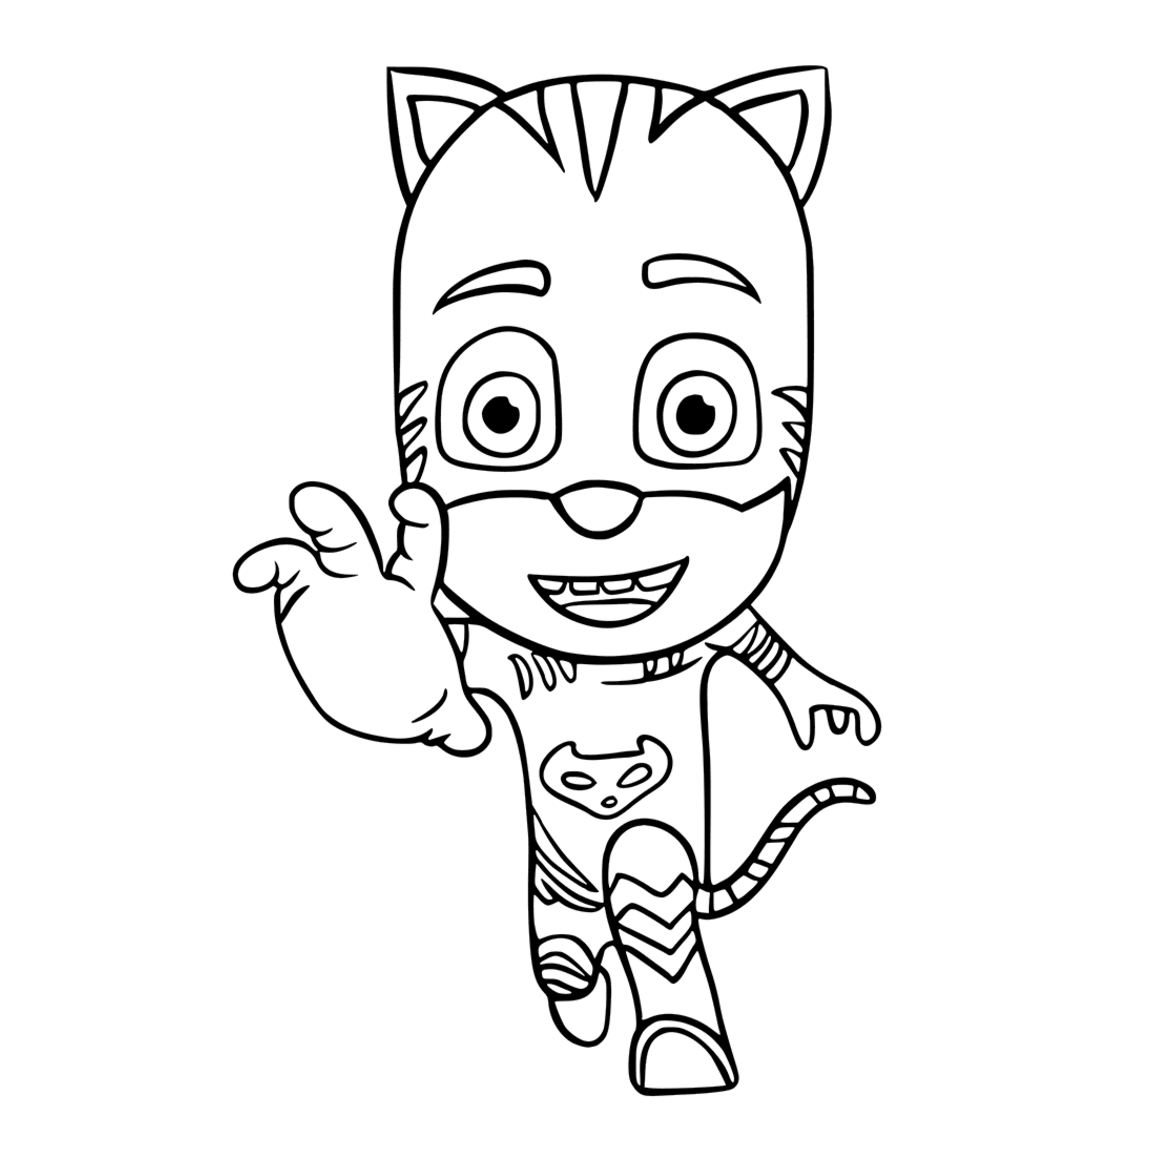 Pj masks coloring pages best coloring pages for kids for Coloring book pages free